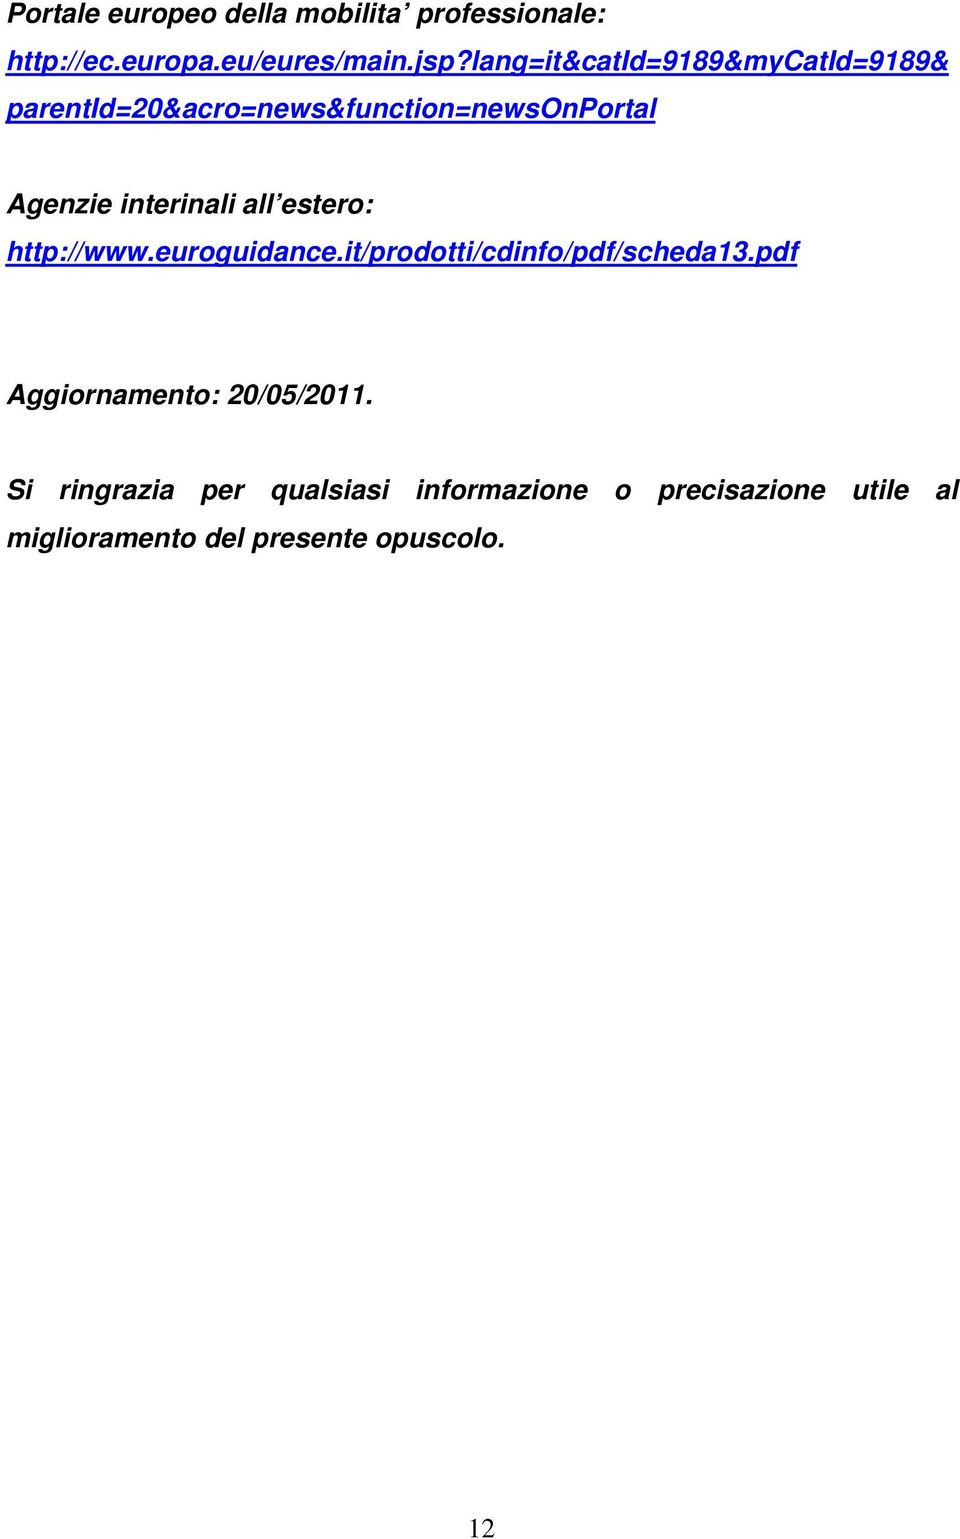 interinali all estero: http://www.euroguidance.it/prodotti/cdinfo/pdf/scheda13.